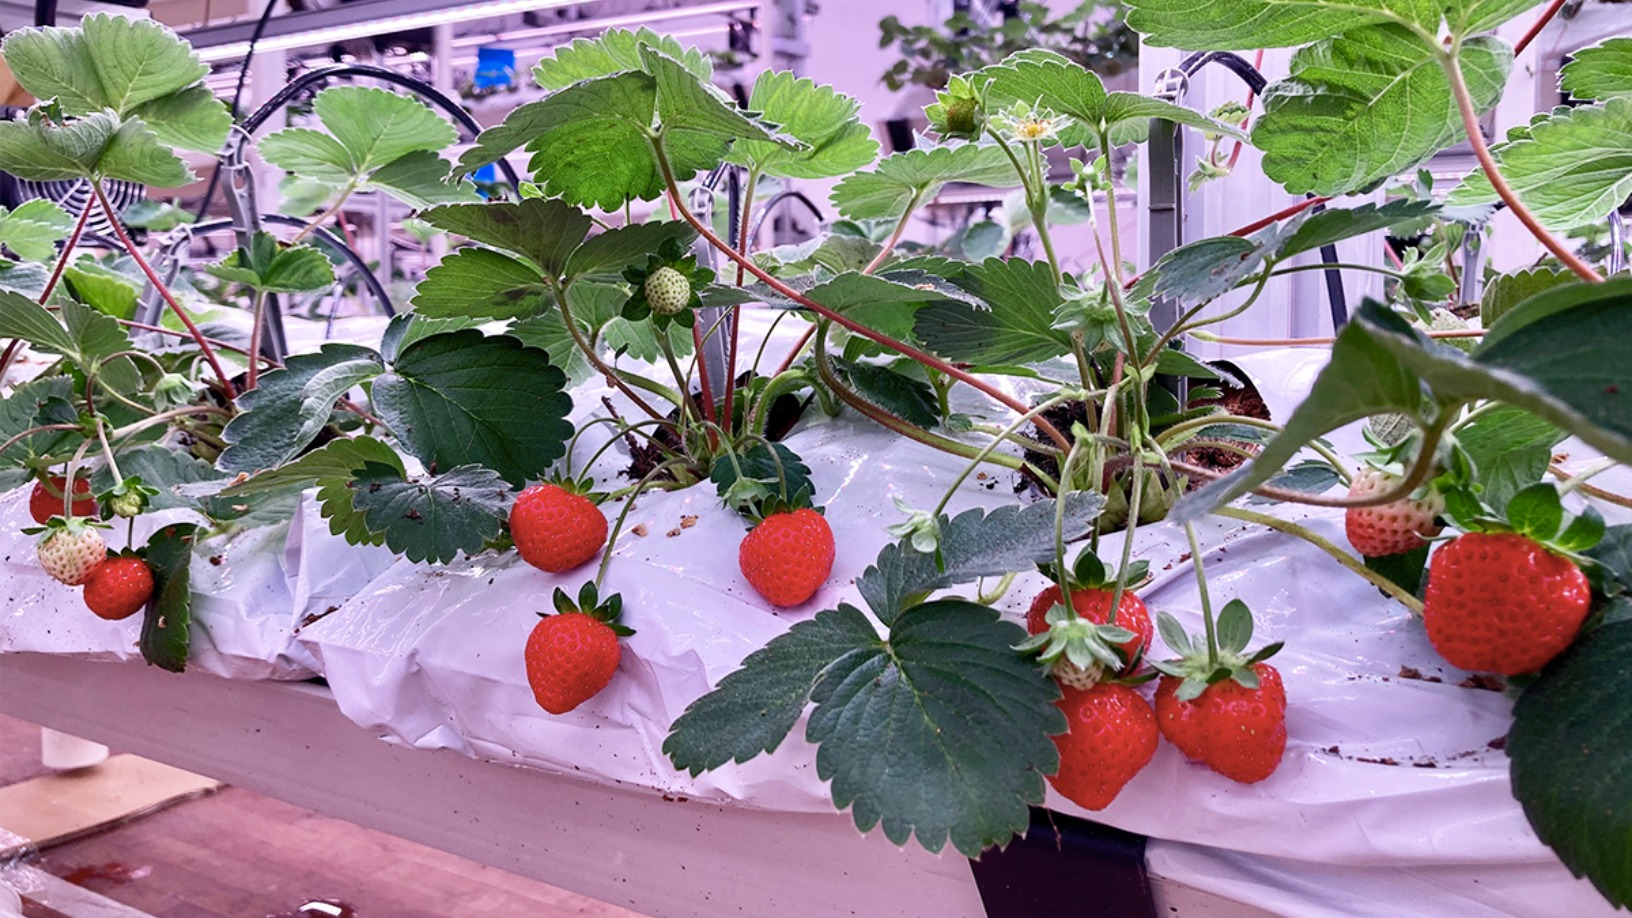 Singrow to start selling Singapore-grown strawberries in March, plans $15m Series A this year